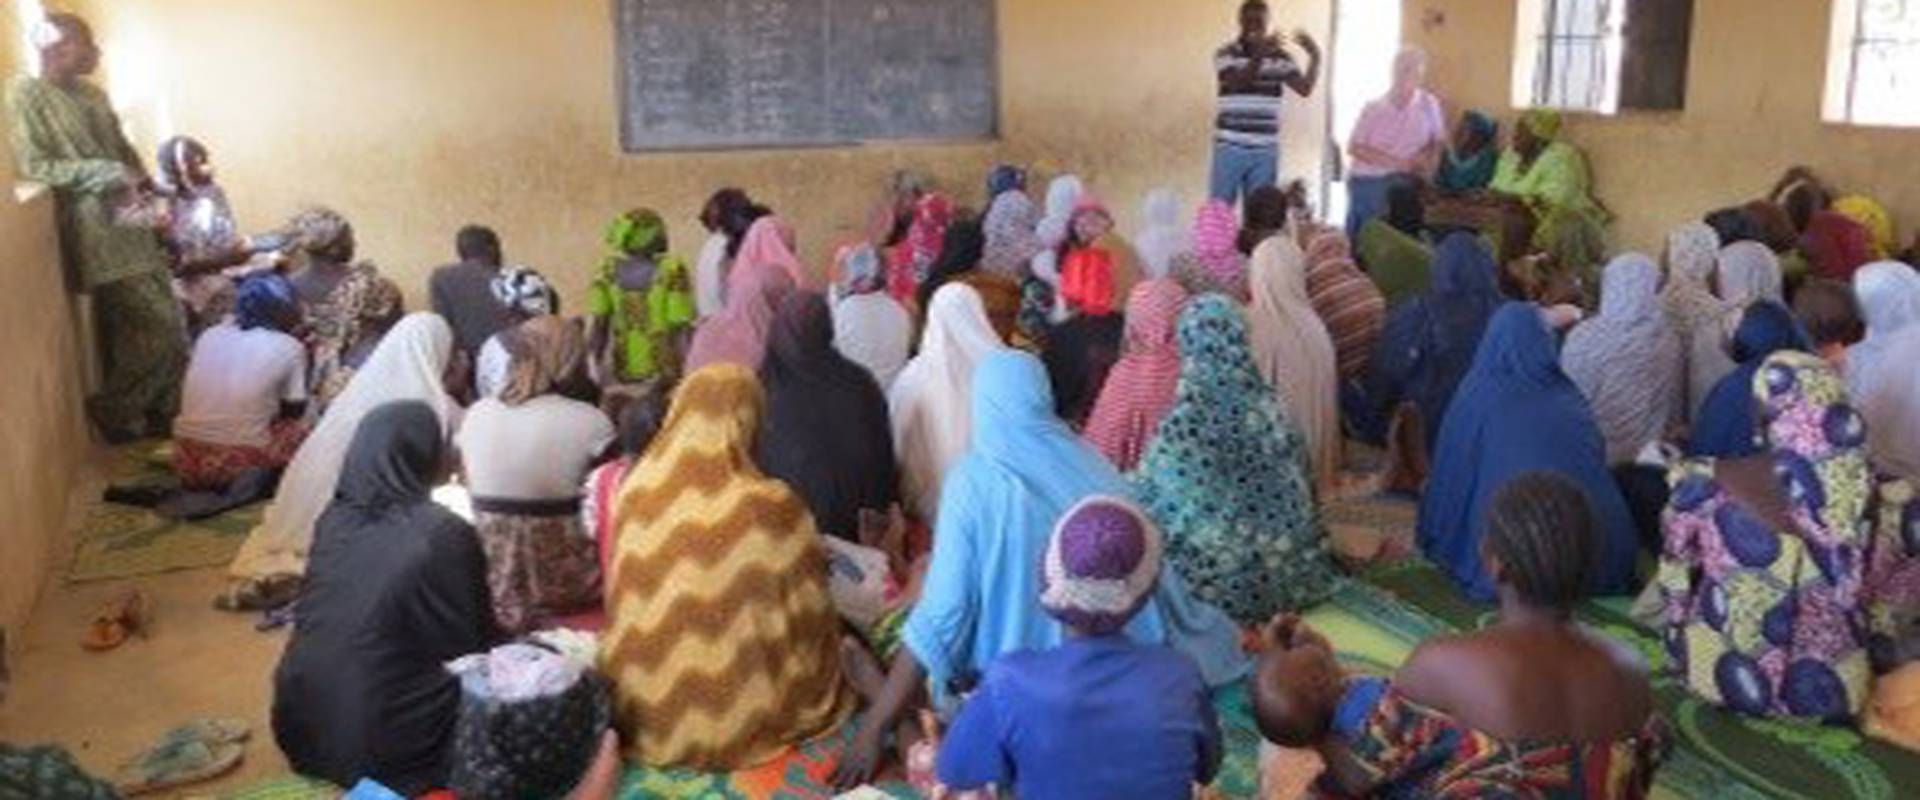 Foreign intervention or local peacebuilding in Nigeria?